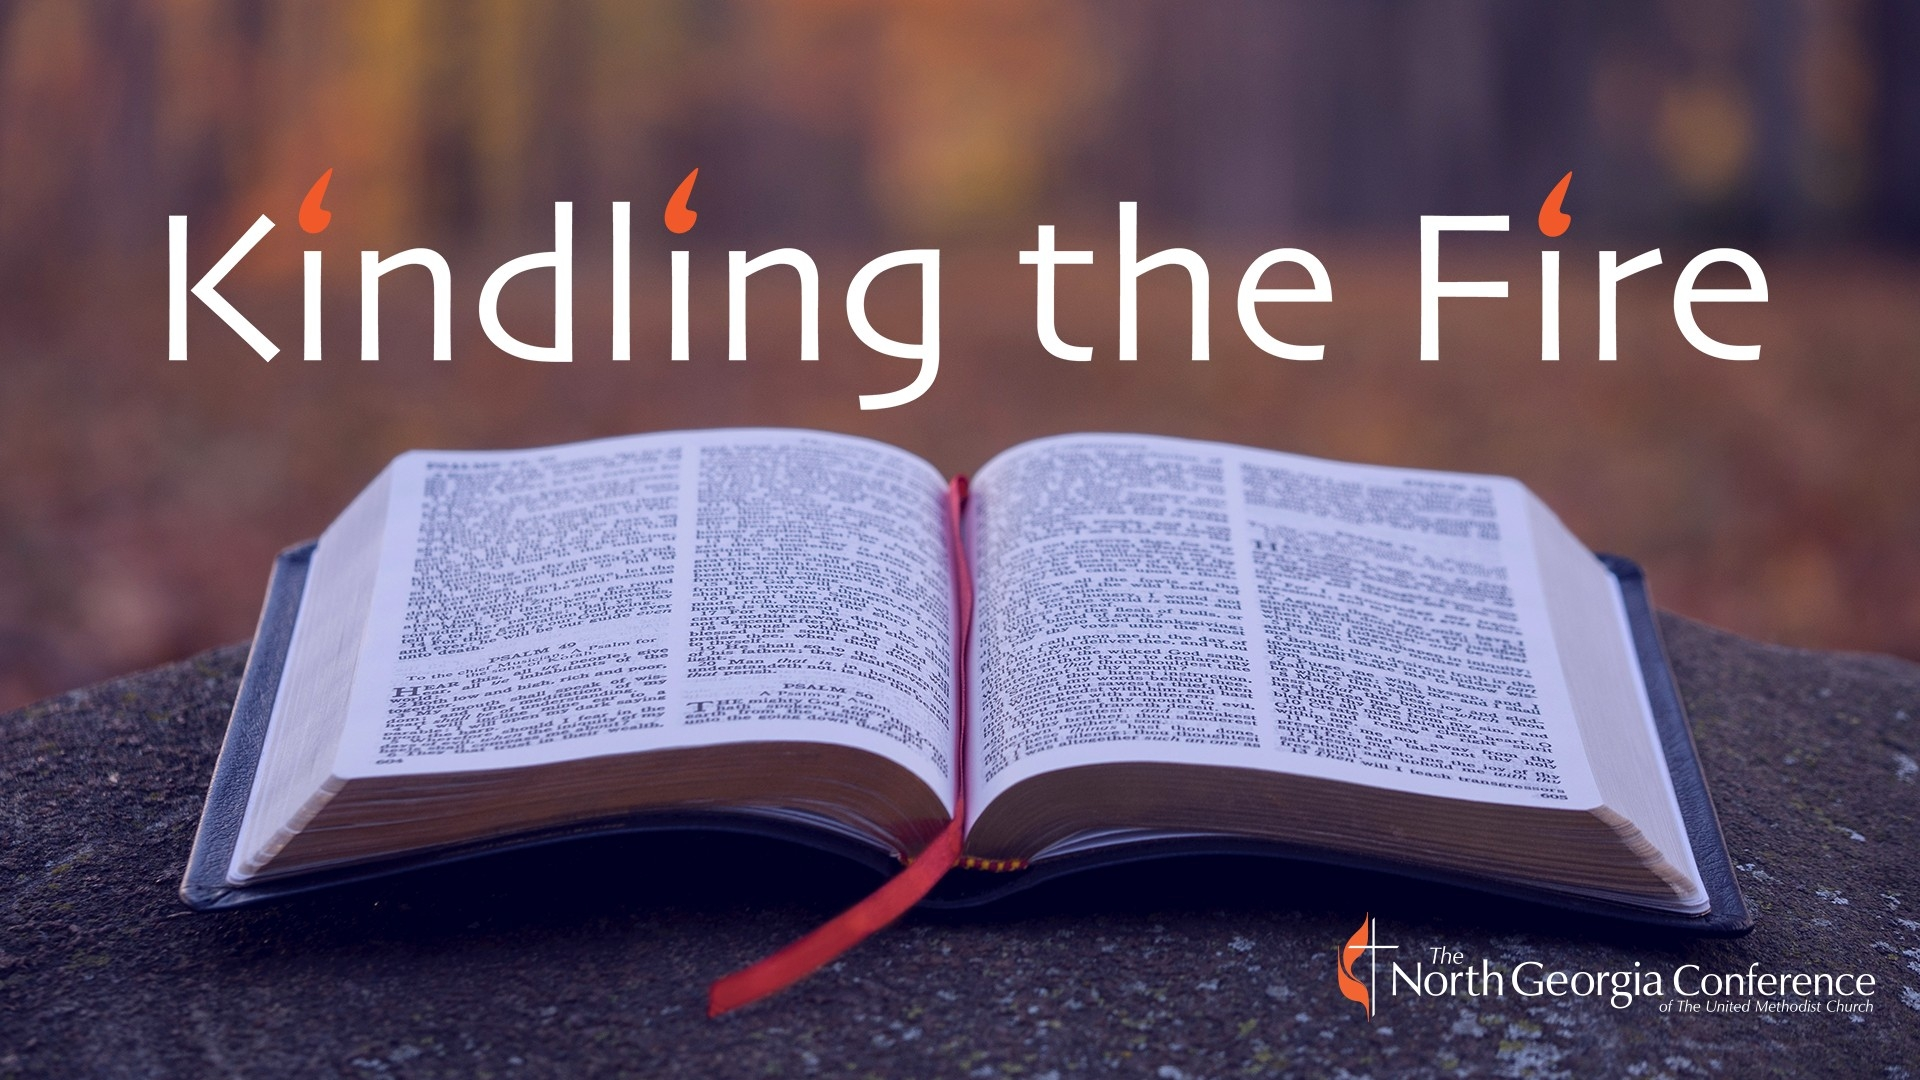 Ngumc: Kindling The Fire: Lectionary Reading Retreat For Clergy  Methodist Church Revised 2020 Lectionary